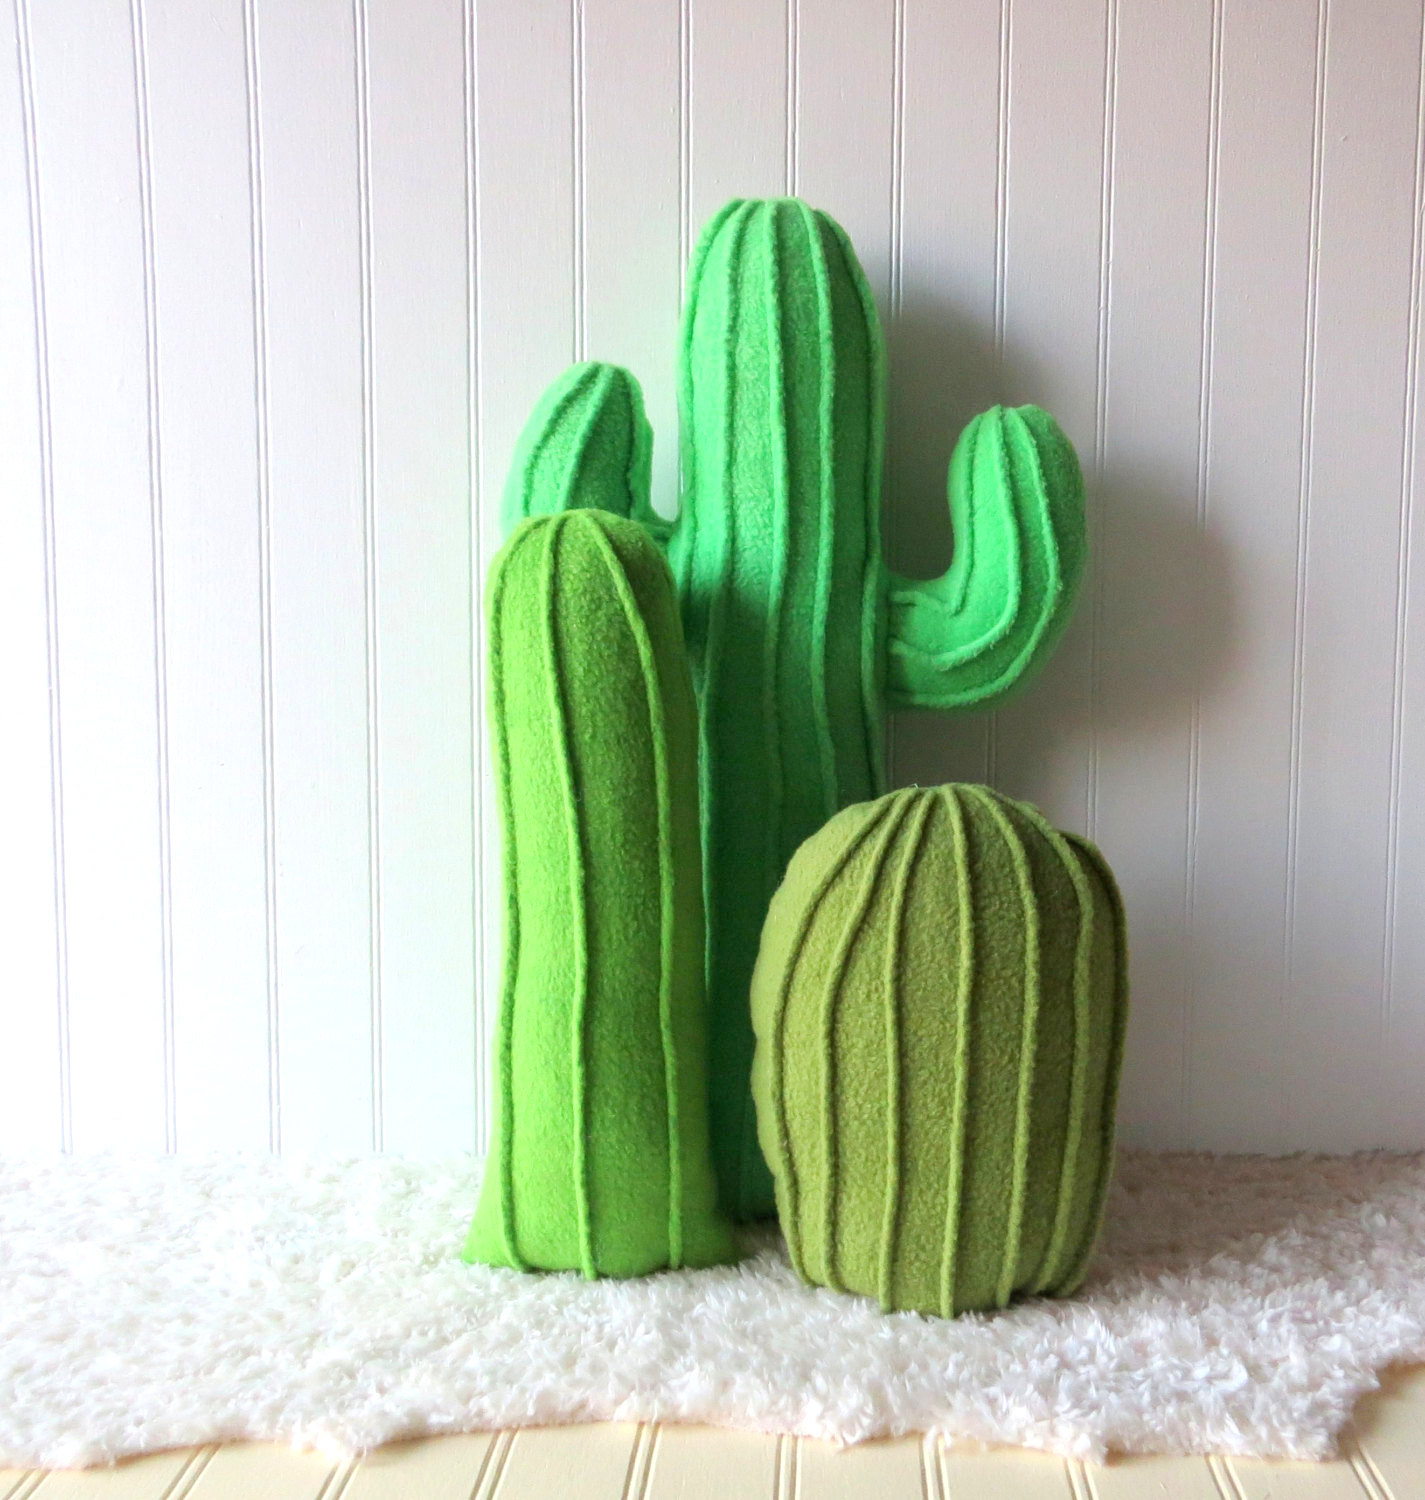 Plush cactus garden from Etsy shop Wild Rabbits Burrow